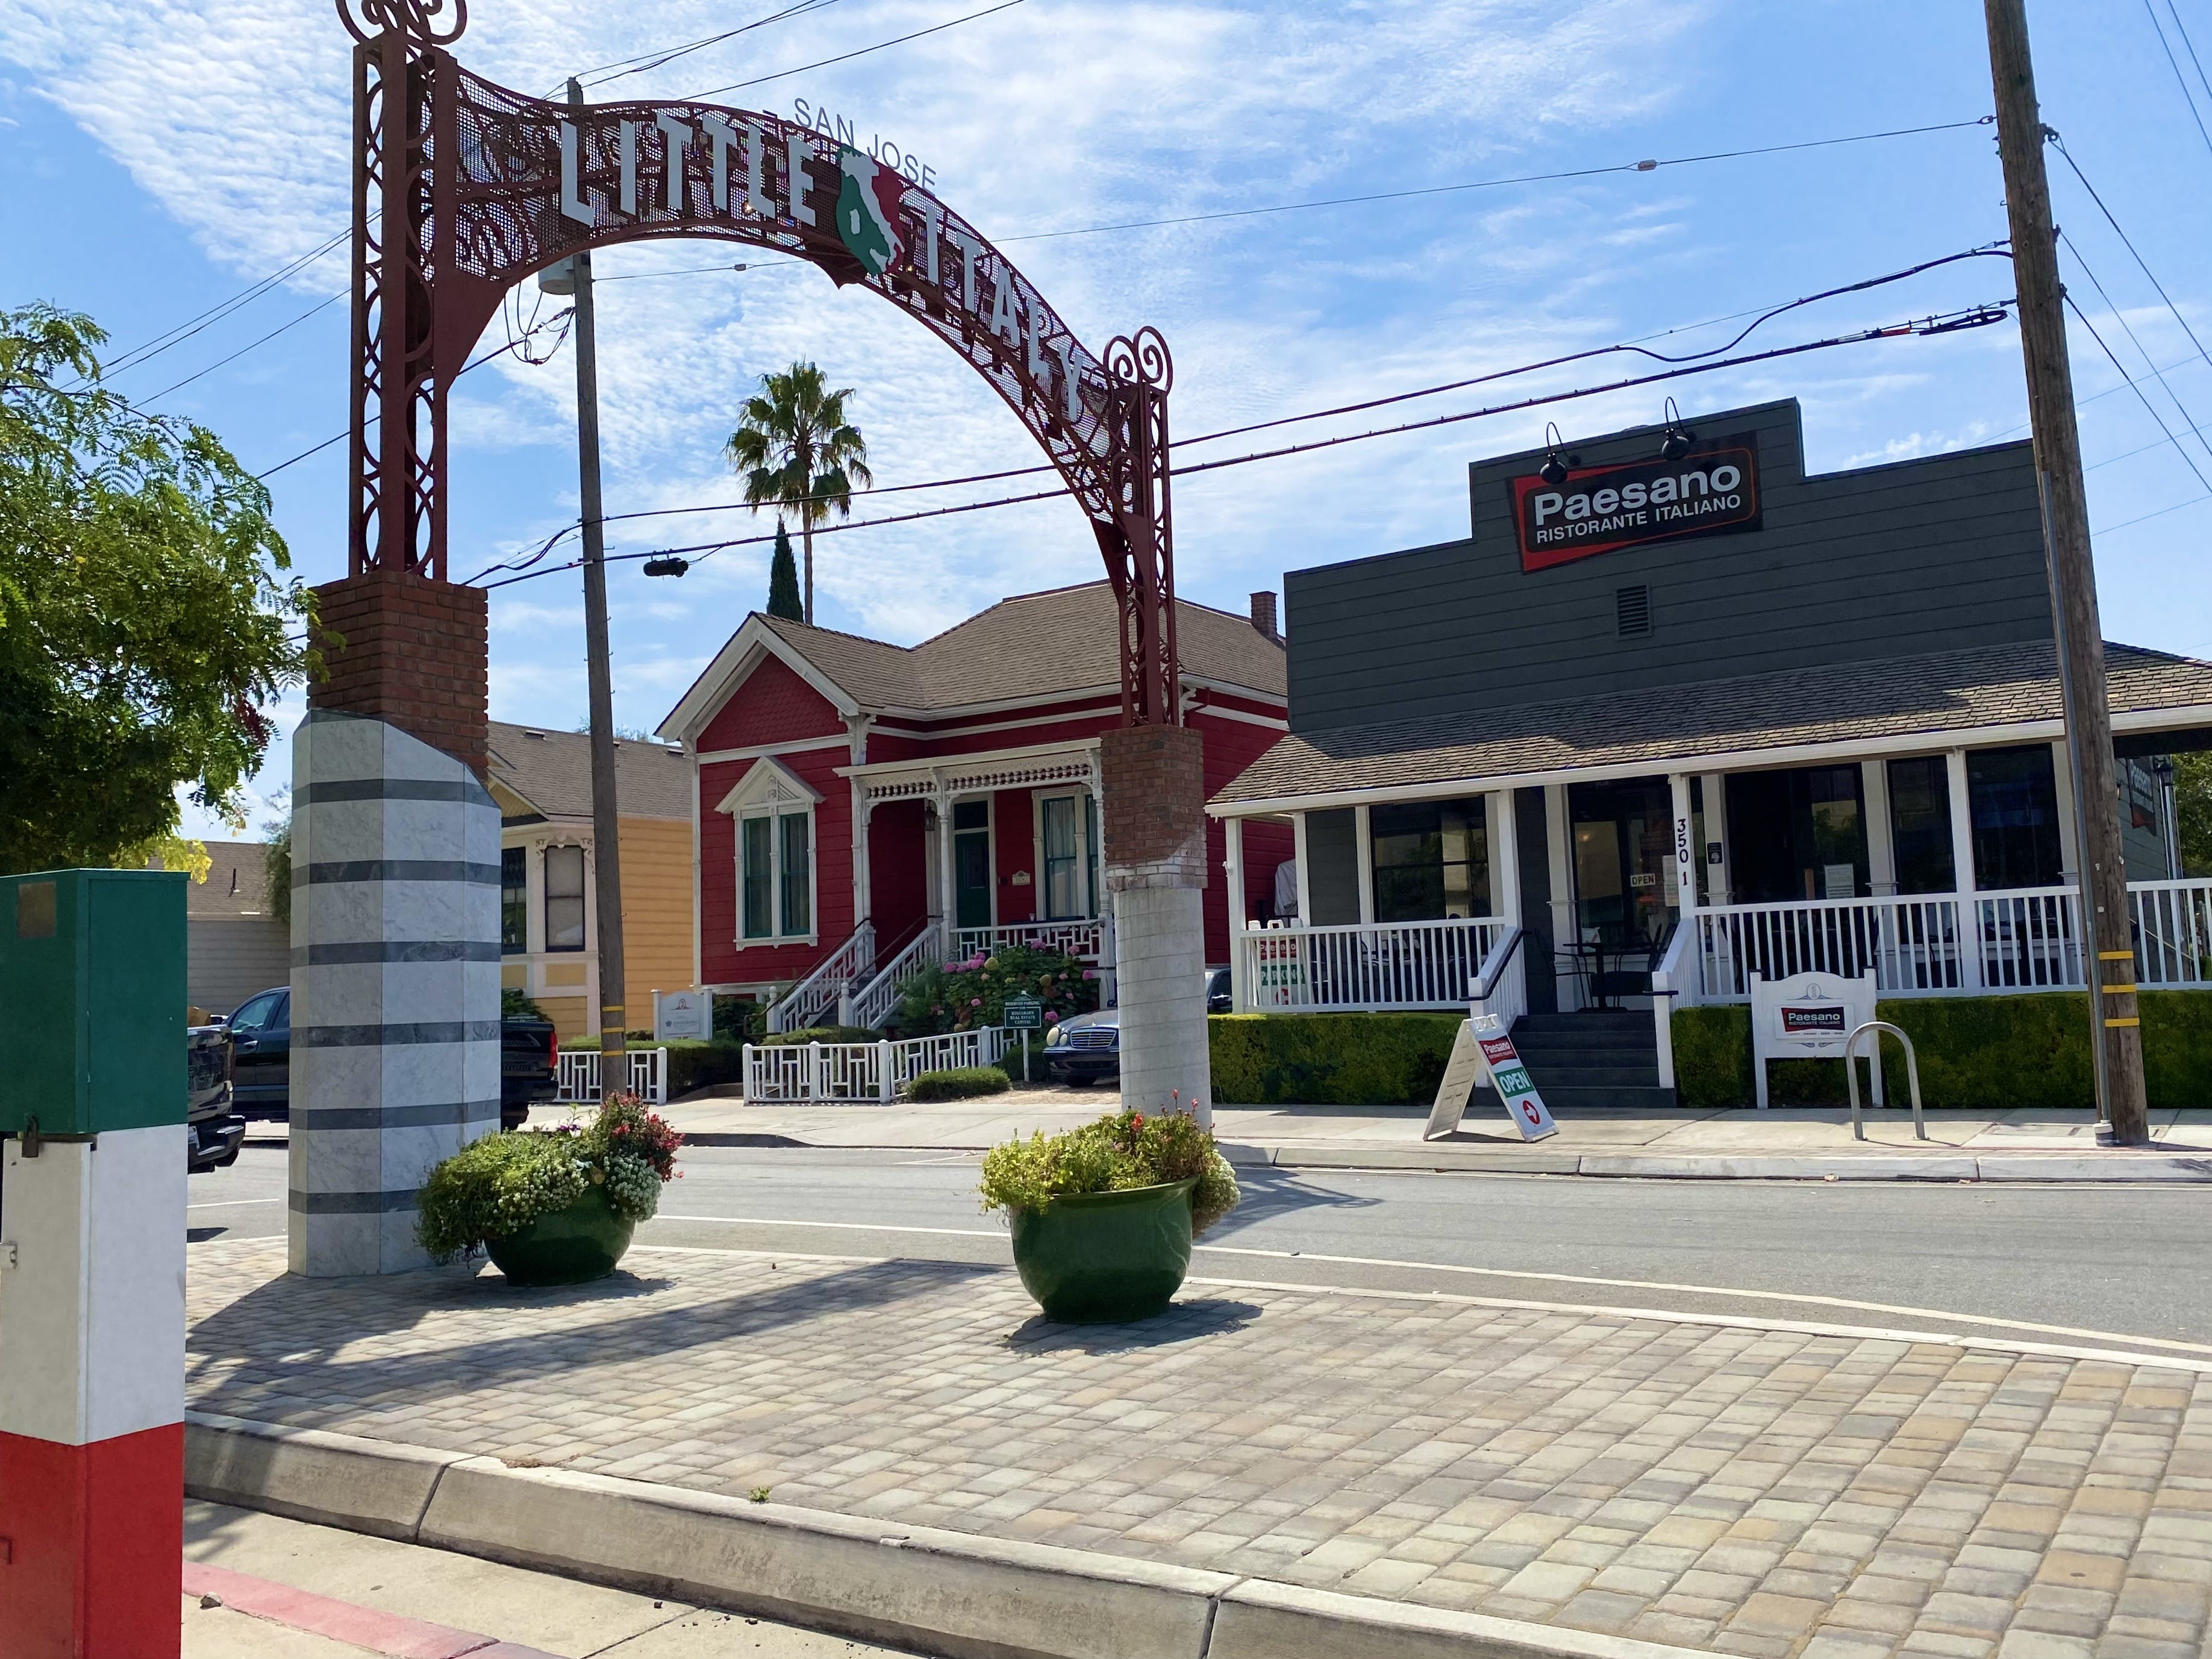 Little Italy archway entrance in Little Italy San Jose